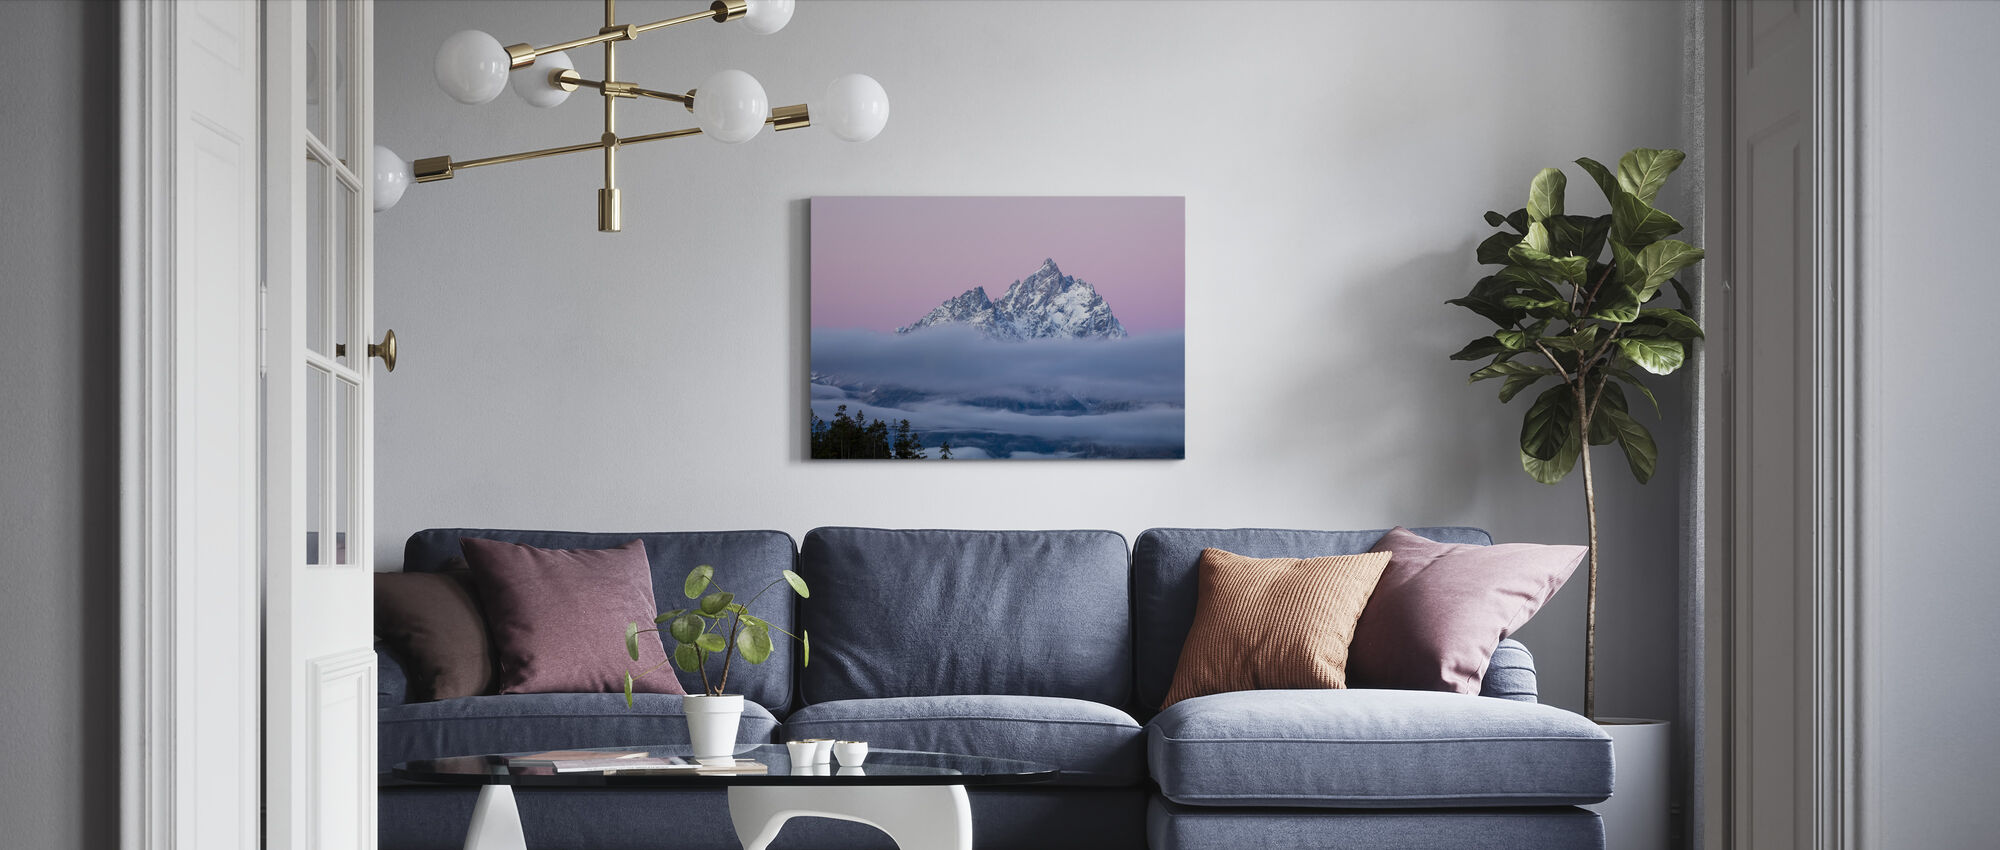 Wrapped in Fog - Canvas print - Living Room